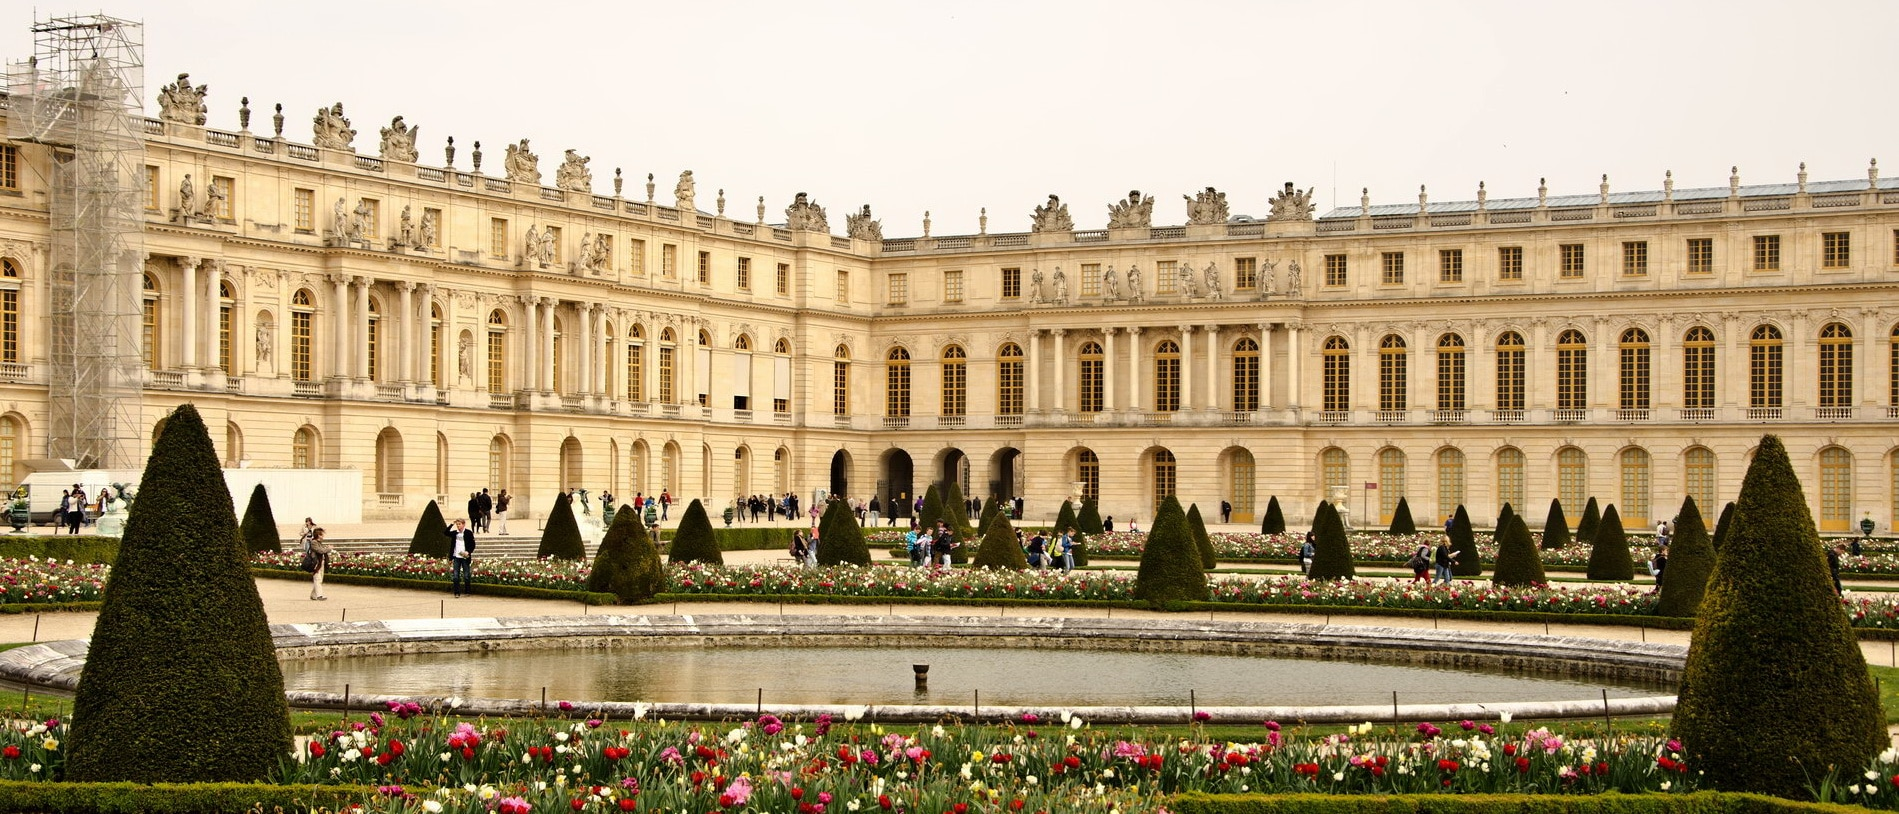 Palace of Versailles wedding venue